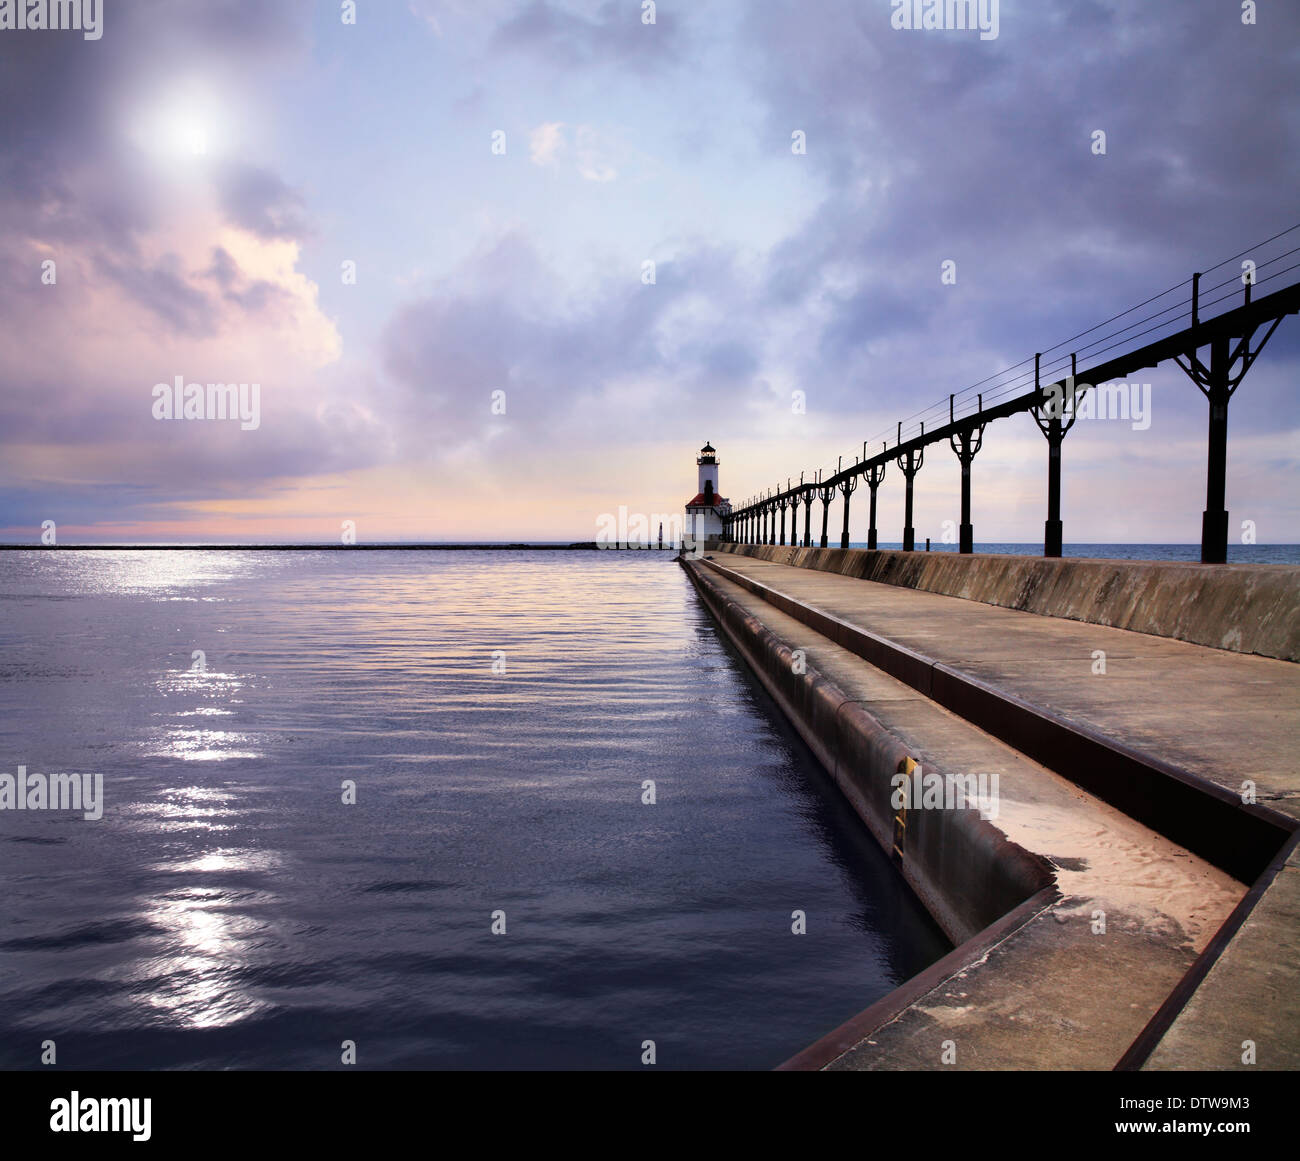 The Michigan City East Pierhead Lighthouse At Sunset On Lake Michigan, Michigan City, Indiana, USA - Stock Image